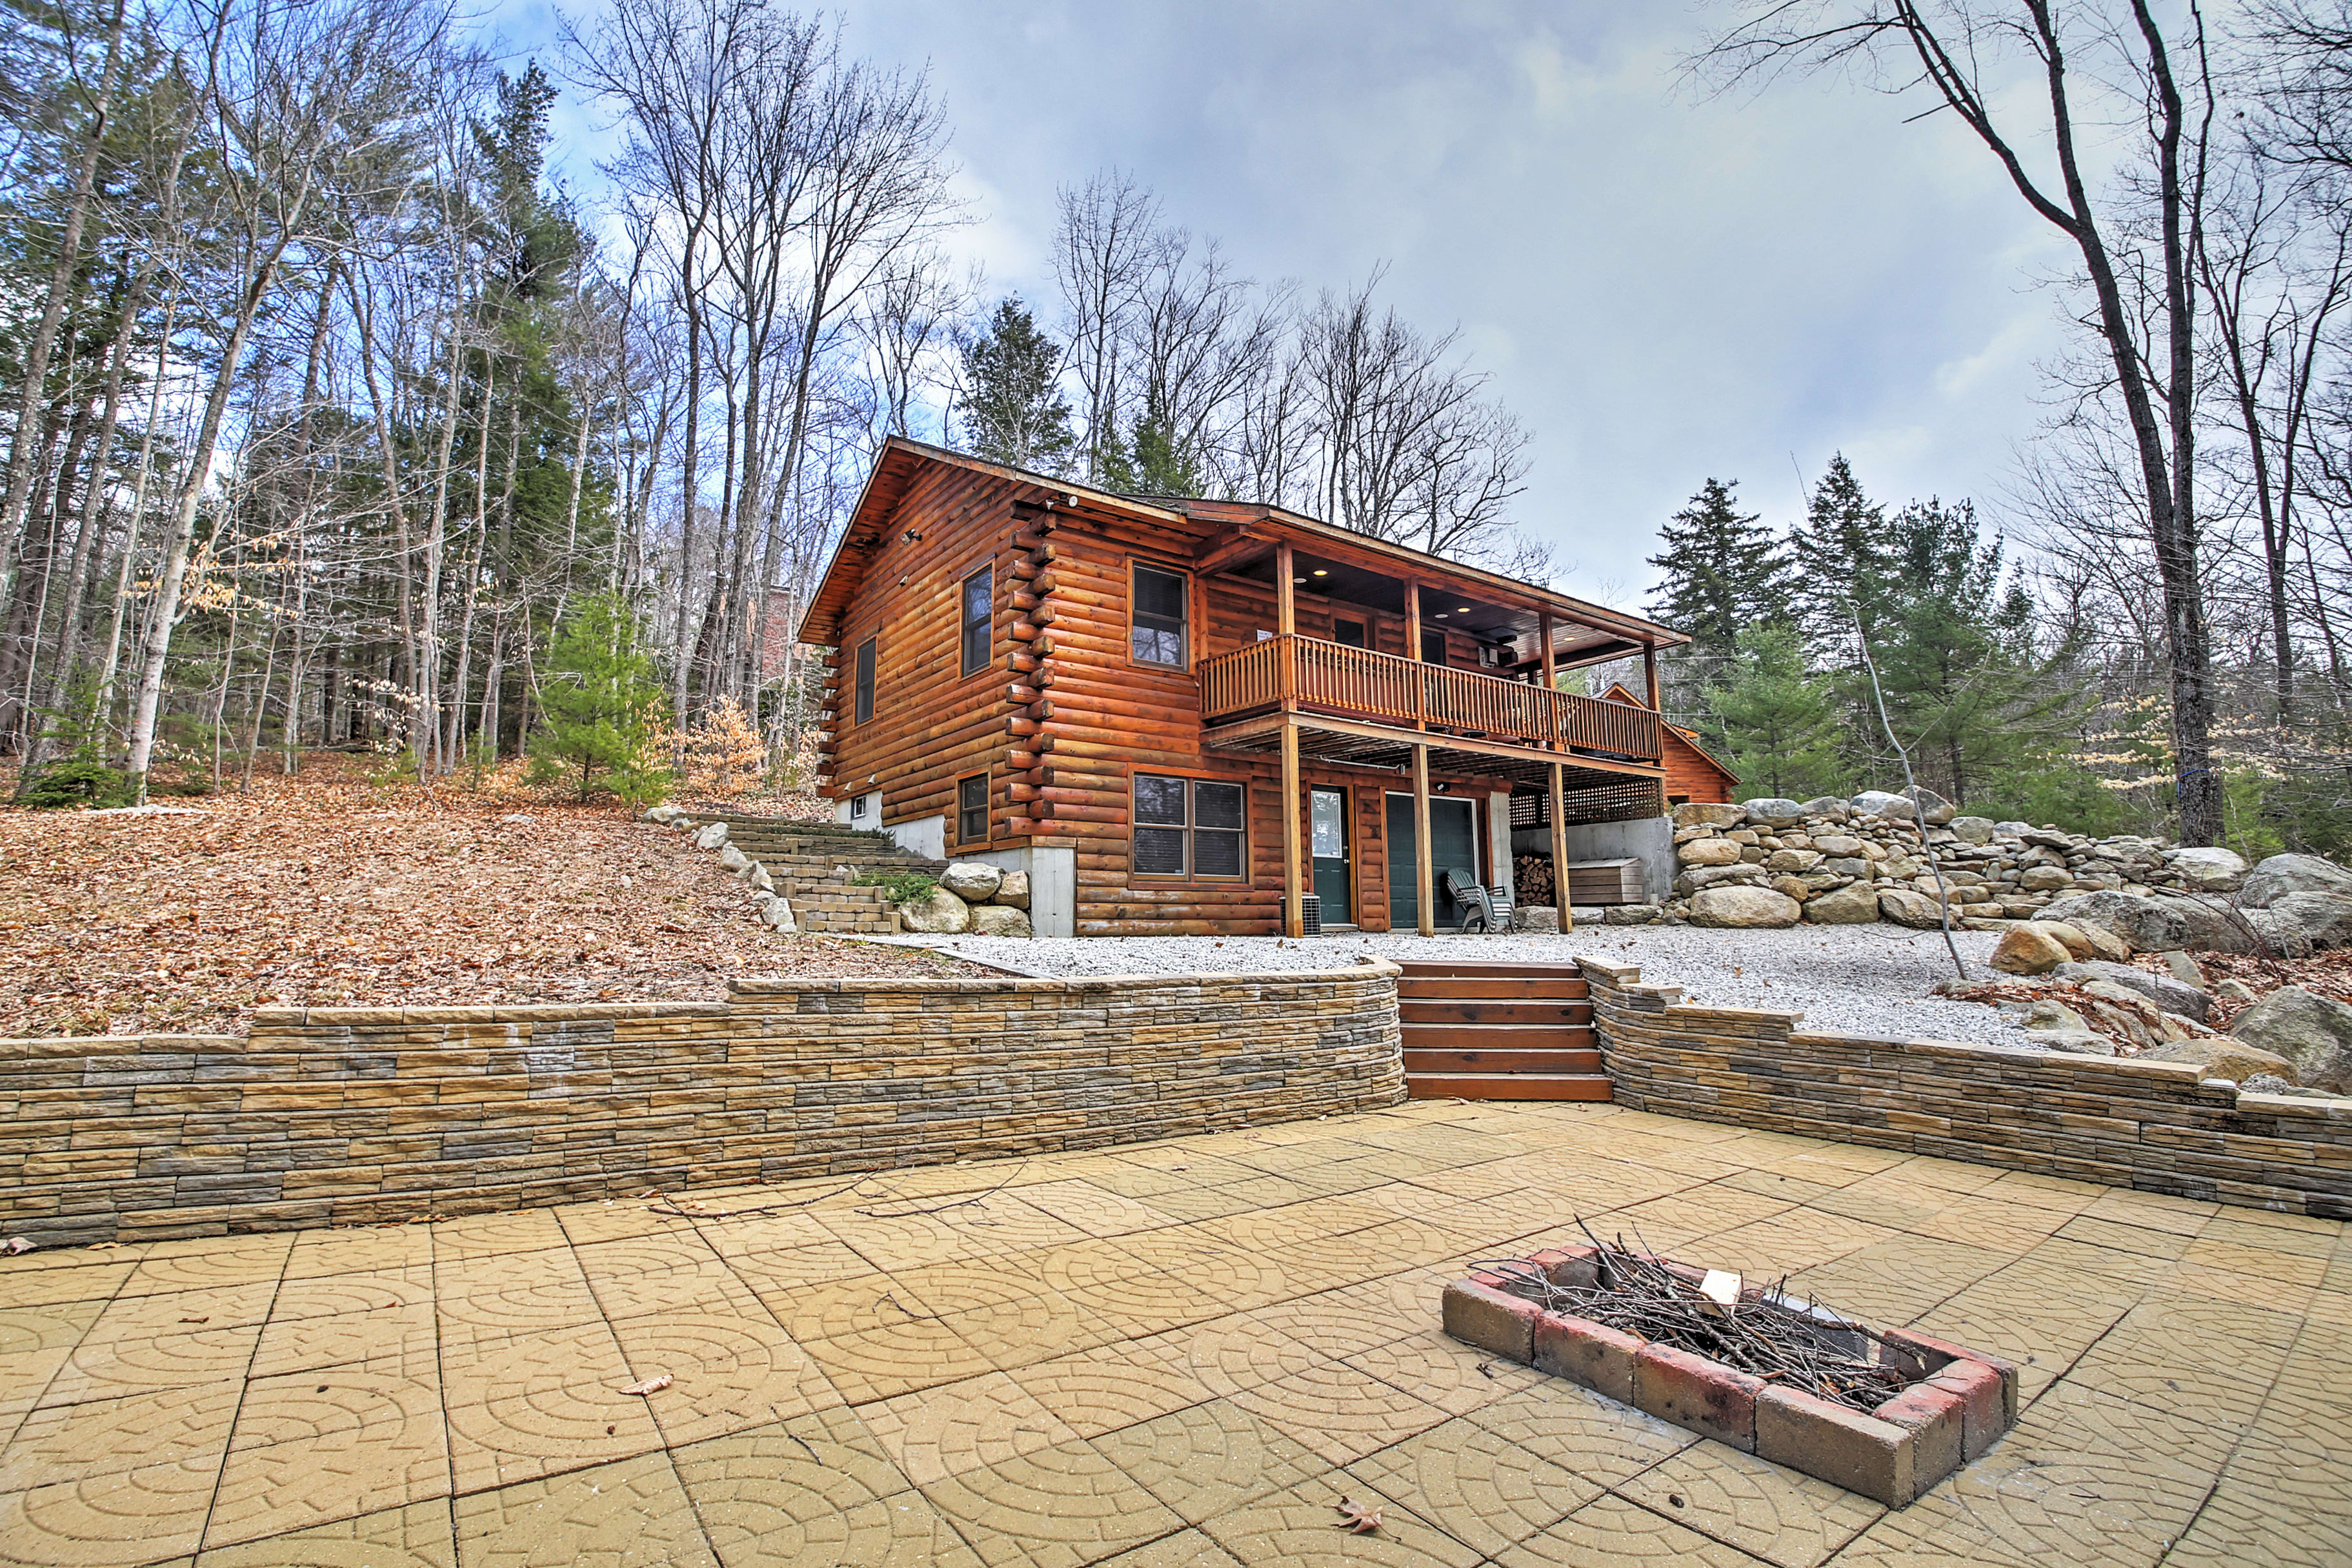 A rejuvenating mountain retreat awaits you at this splendid vacation rental log cabin in North Conway!